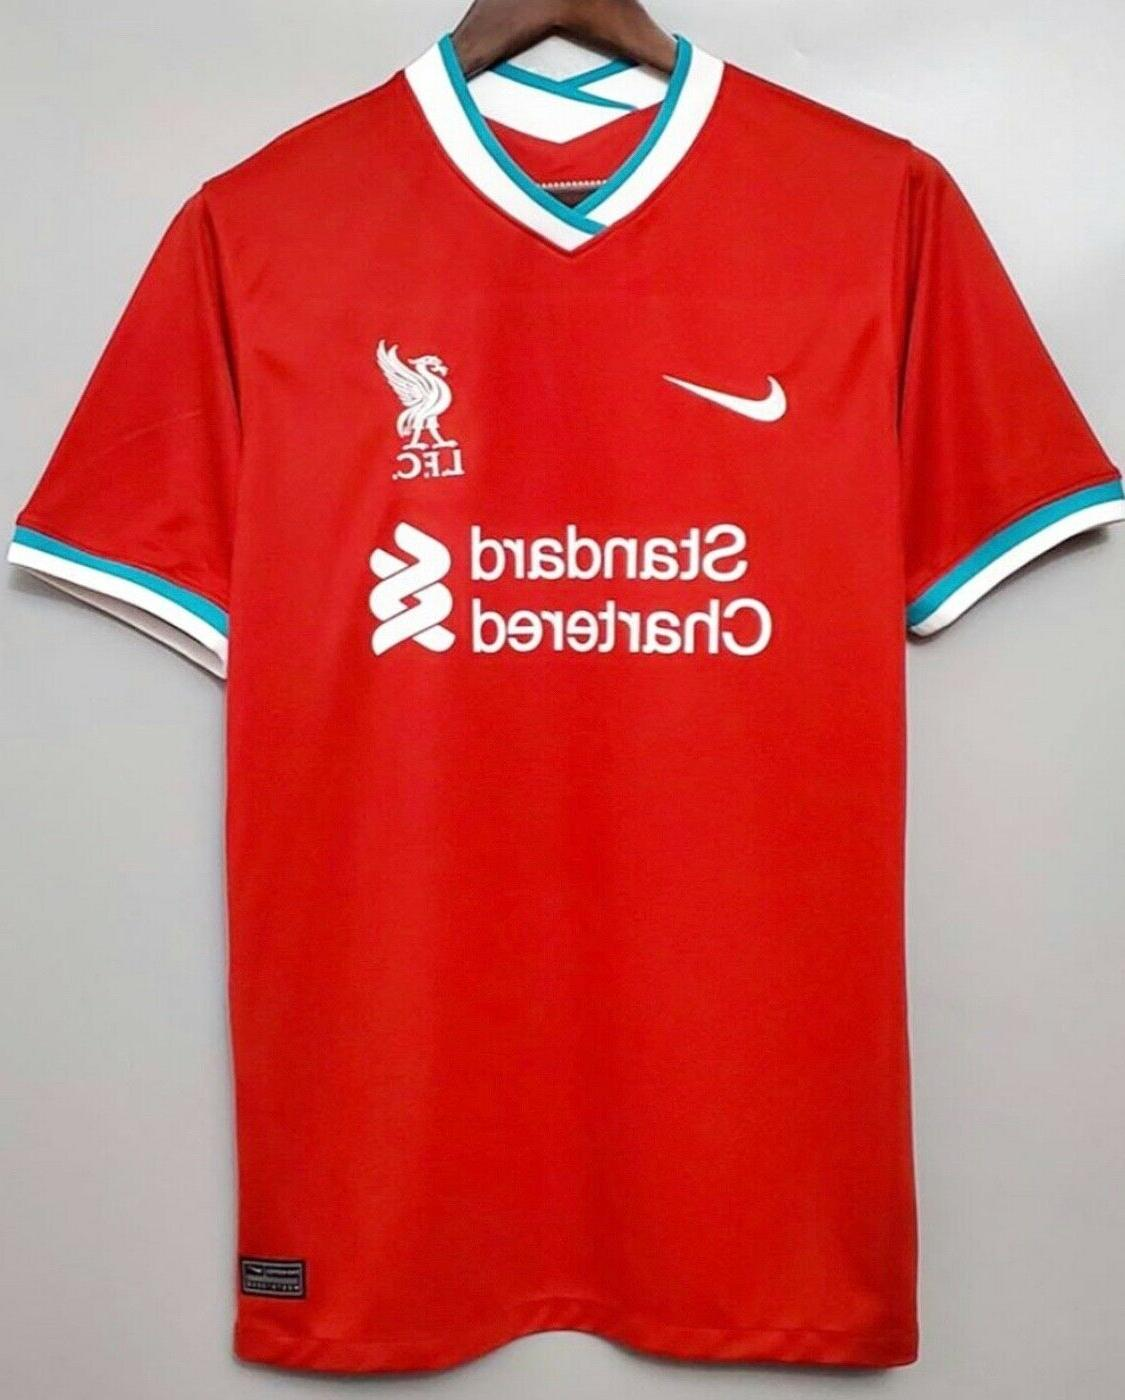 clearance liverpool home soccer jersey 2020 2021